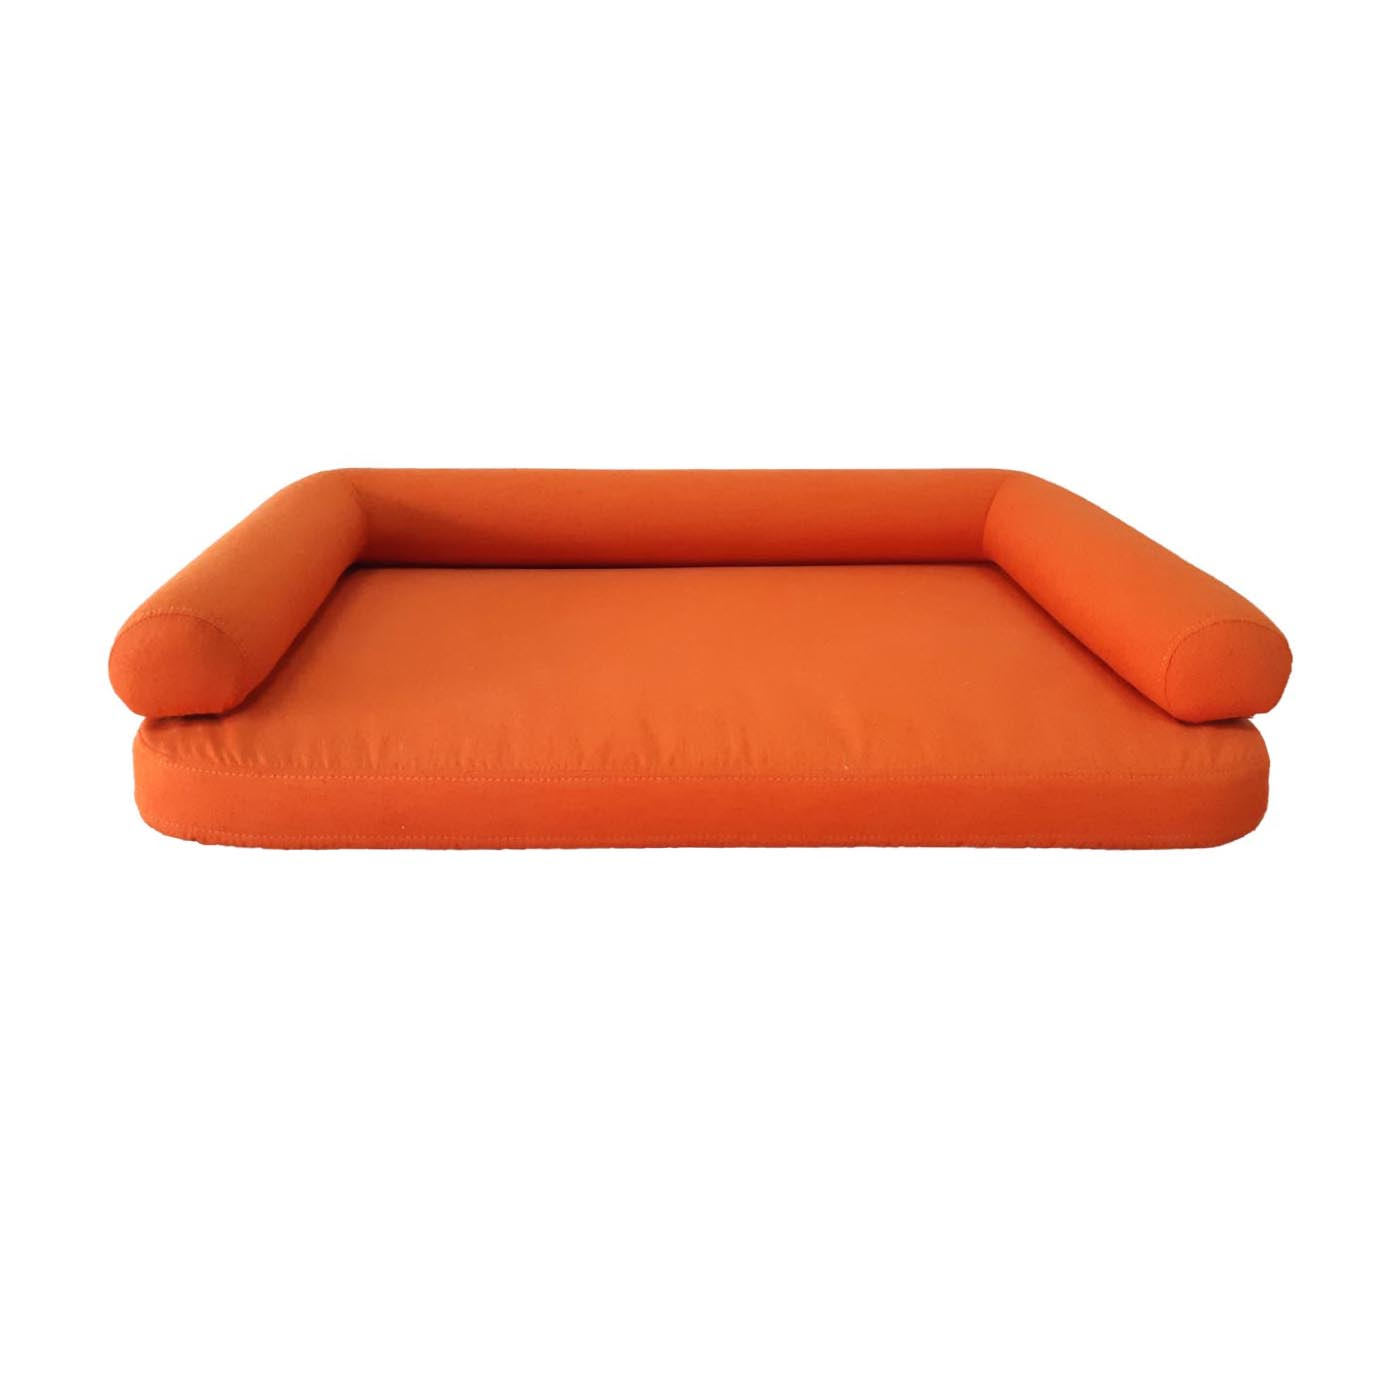 The Orange Pohovka Pet Bed